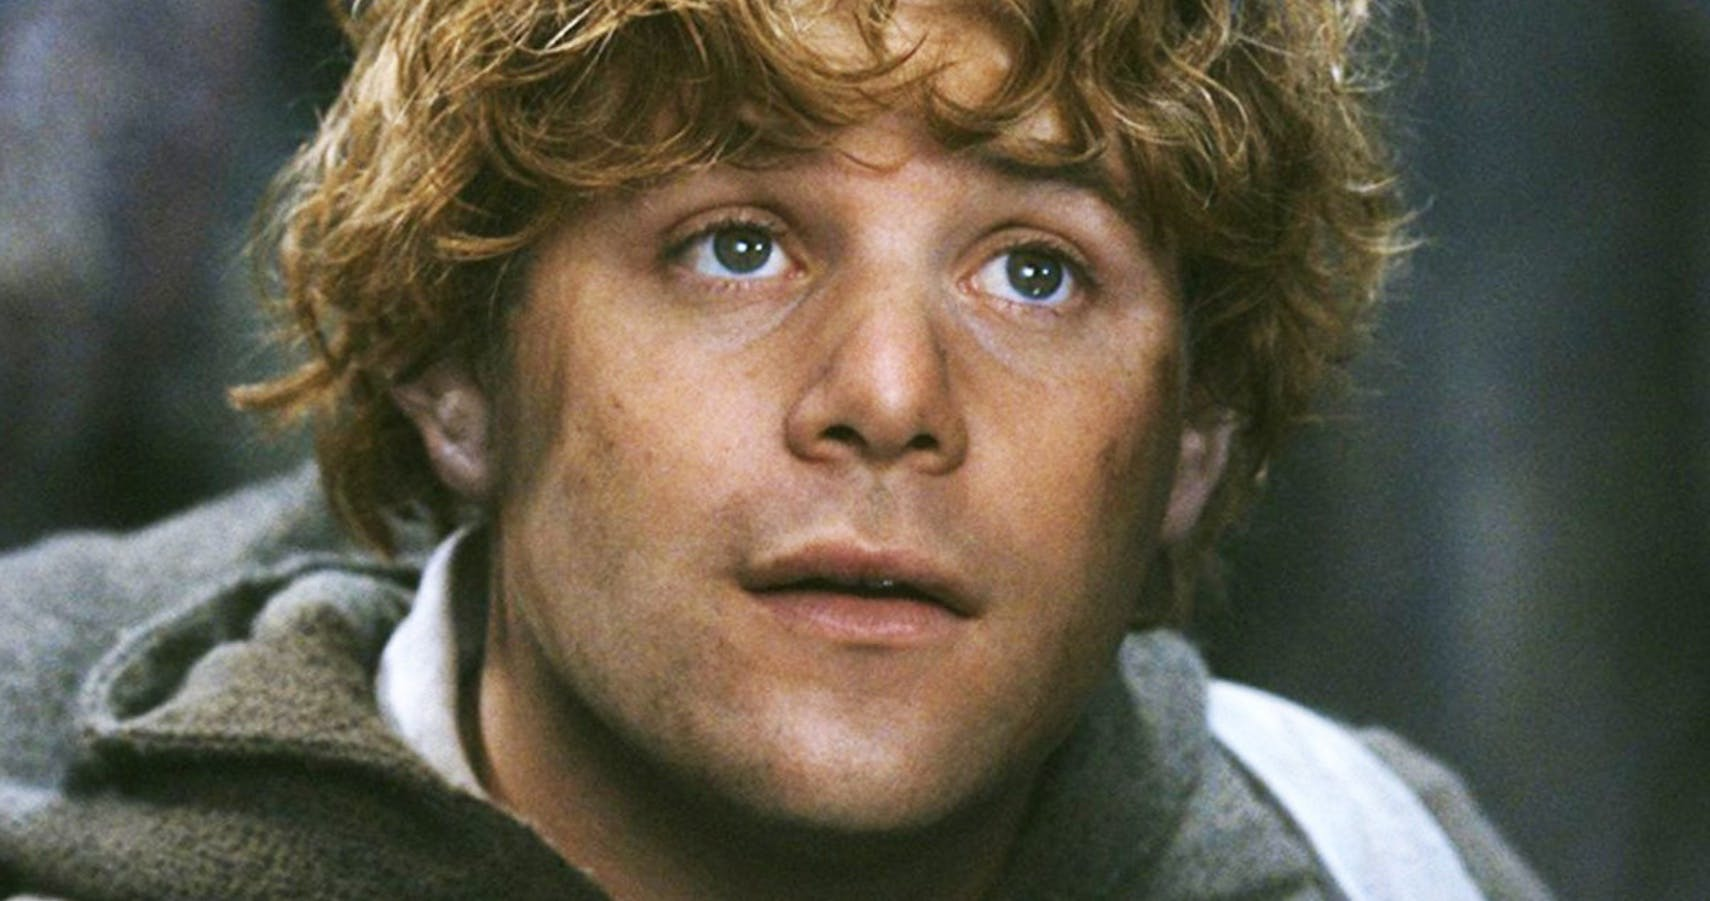 sam, samwise gamgee, Lord of the Rings